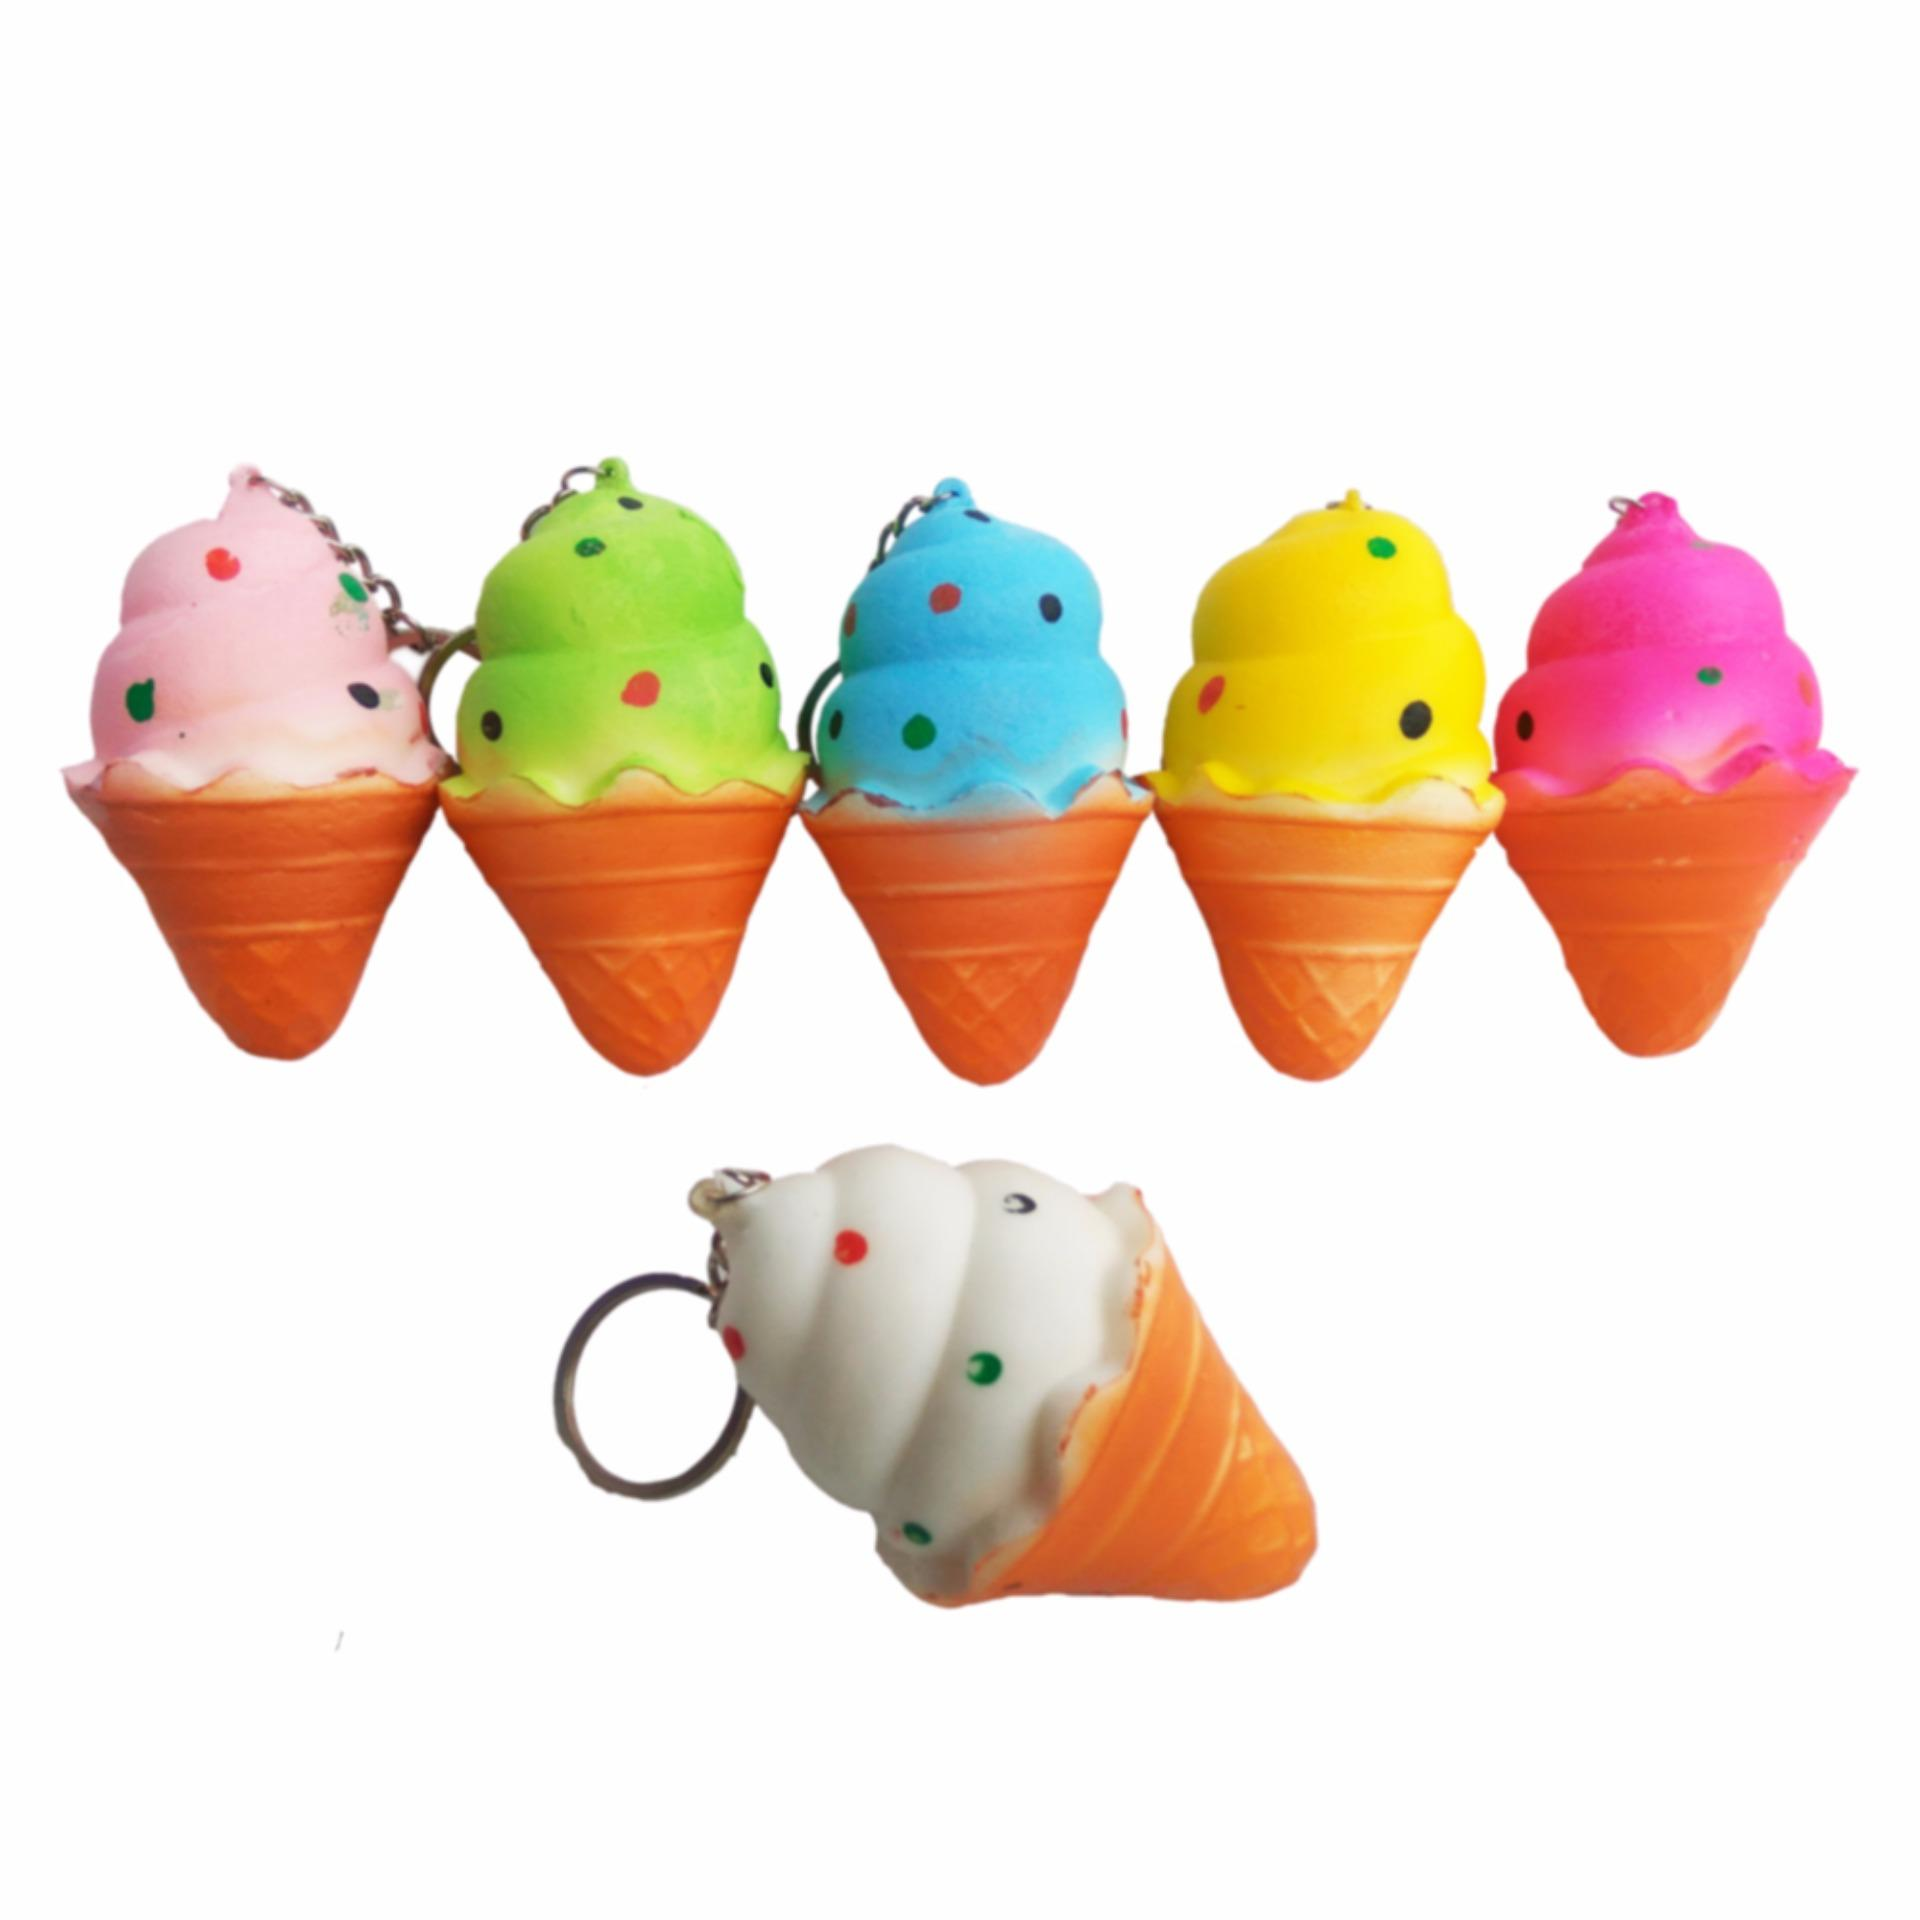 Daftar Harga Simply Chic Squishy Gantungan Kunci Es Krim Key Holder Tempat Simulation Ice Cream Slow Rising Fun